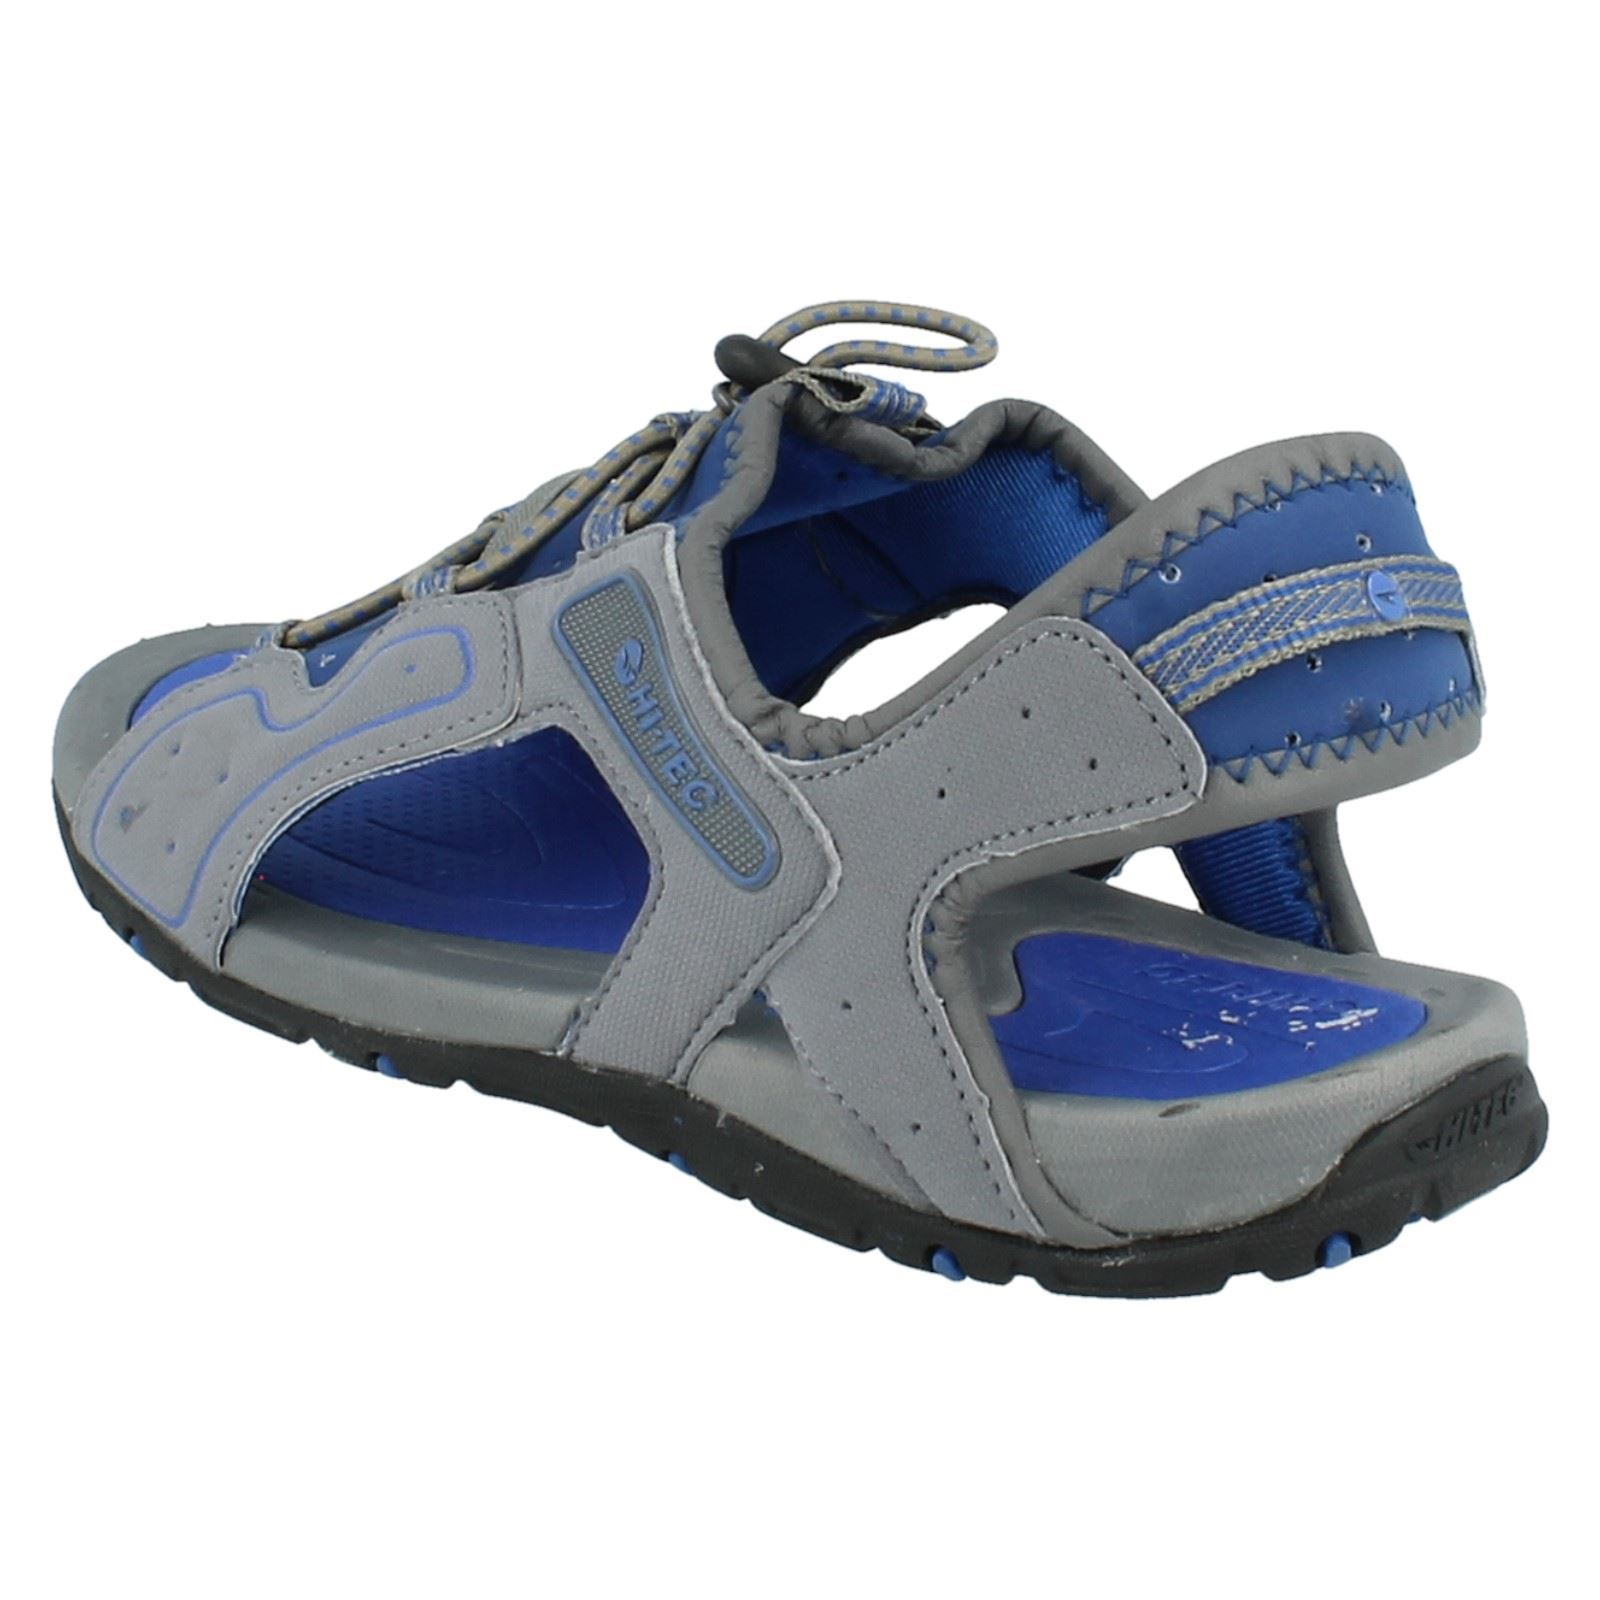 'Boys Hi-Tec' Sandals - Turtle Beach JR